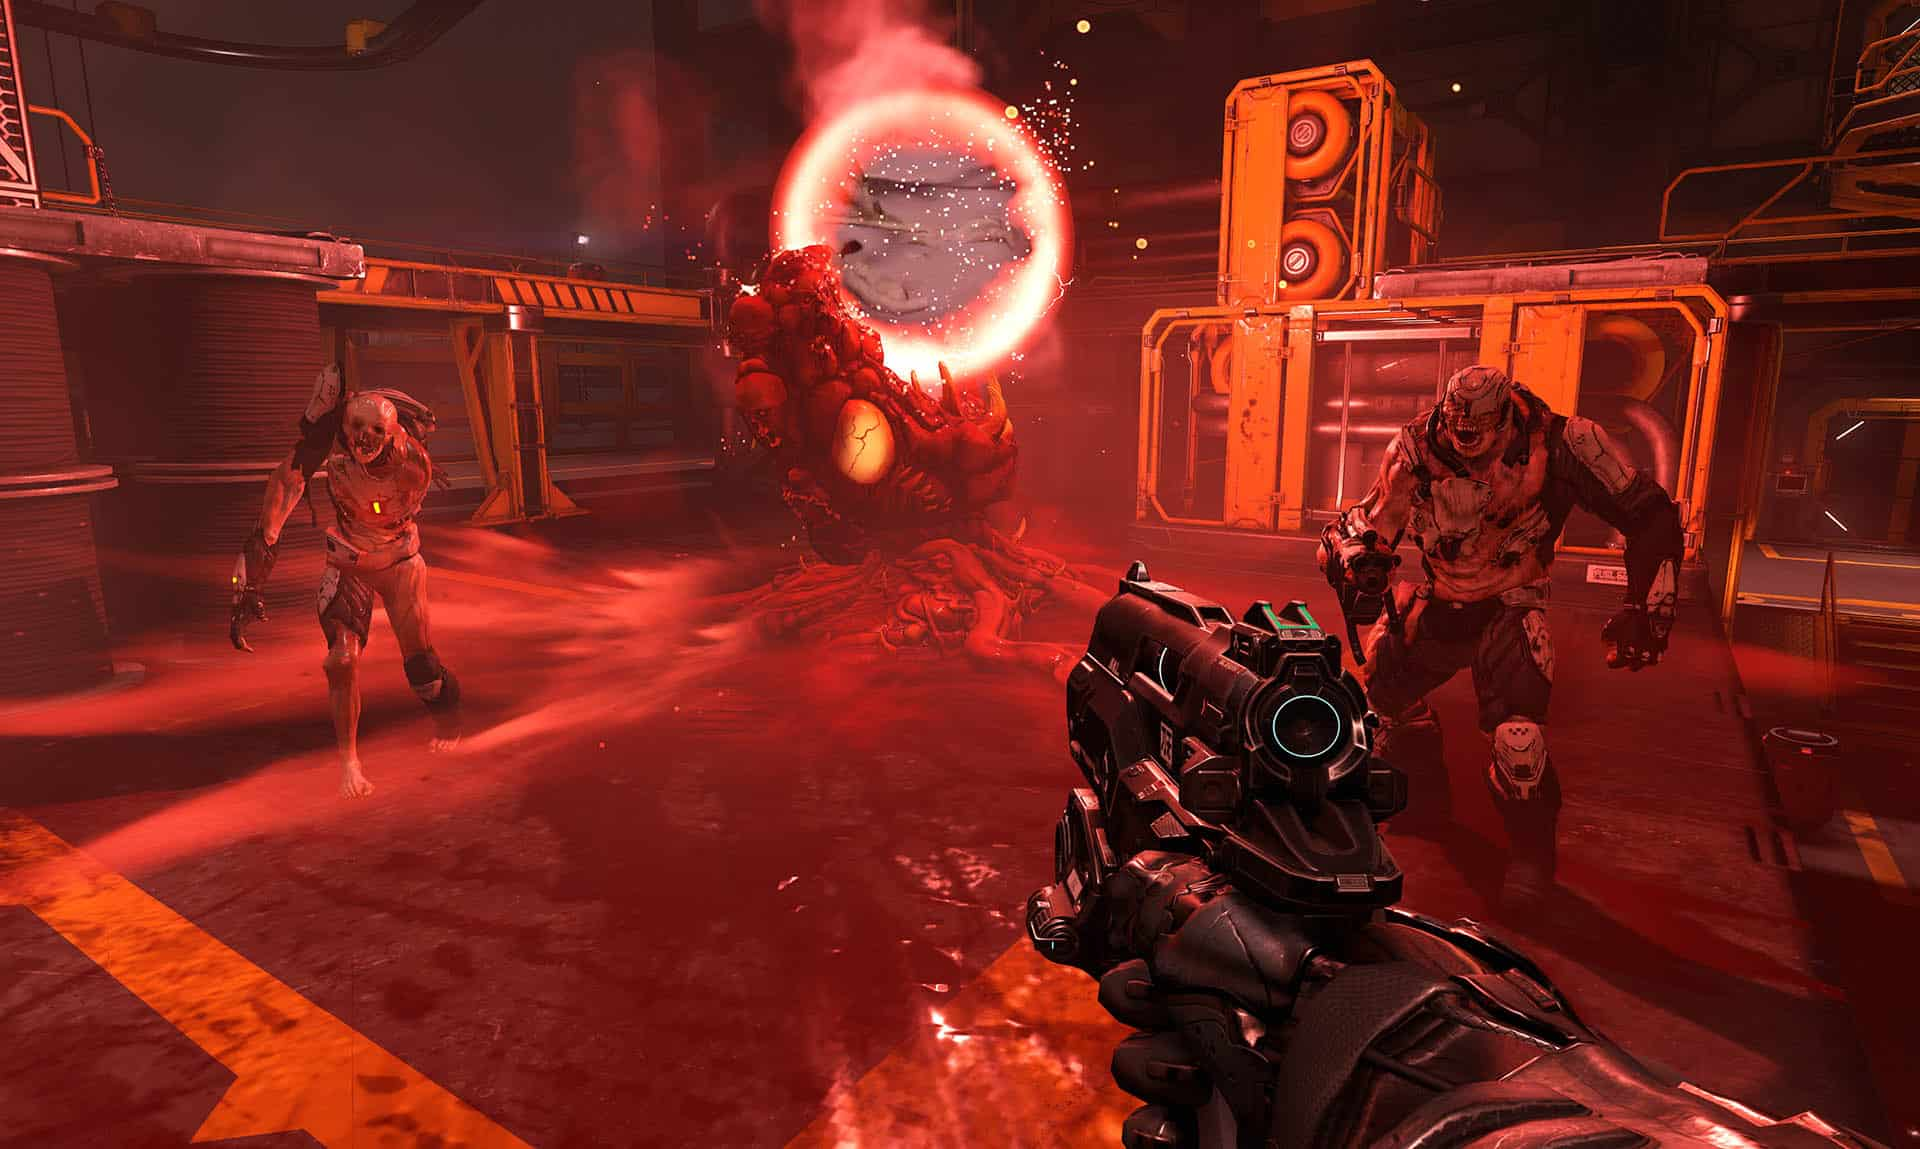 DOOM - Nuovo Gameplay in 1080p a 60FPS